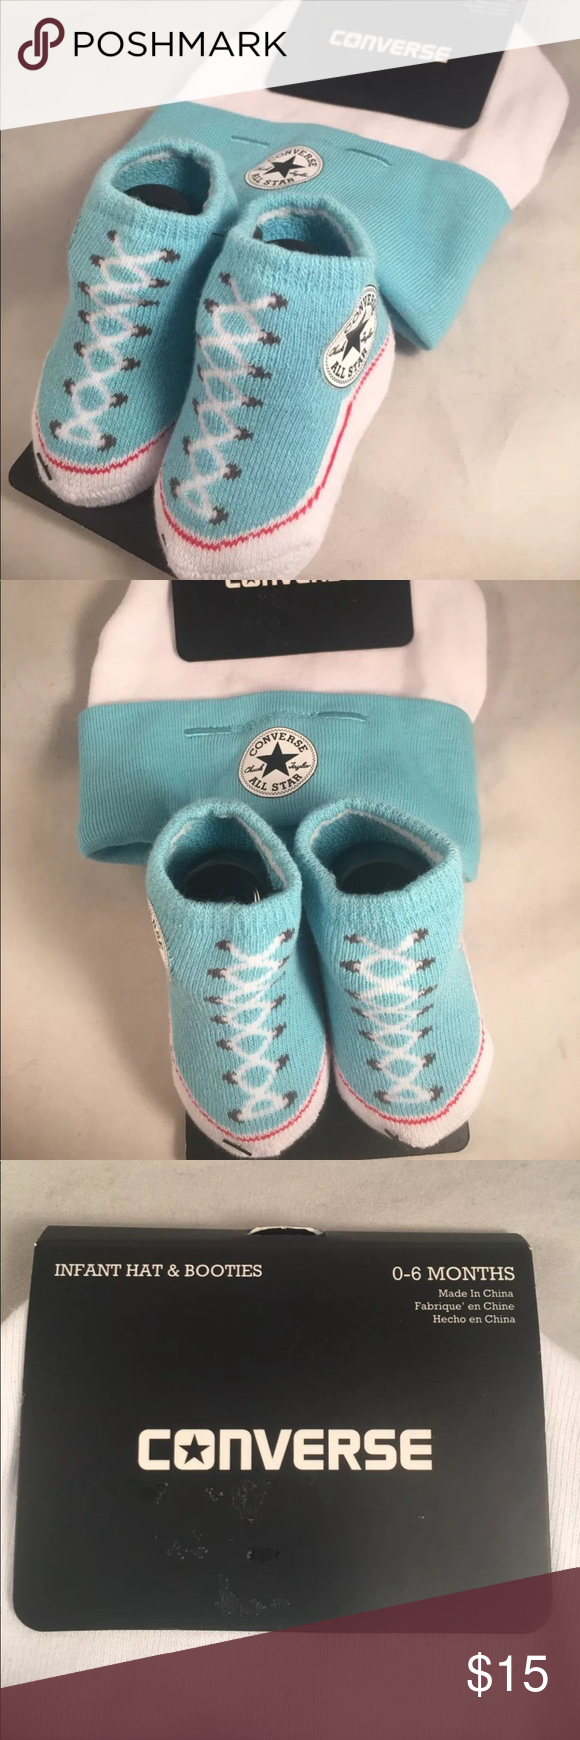 Converse Baby Booties   Hat New with Tags. Converse Chuck Taylor Infant Hat  and 1 158668a019c6